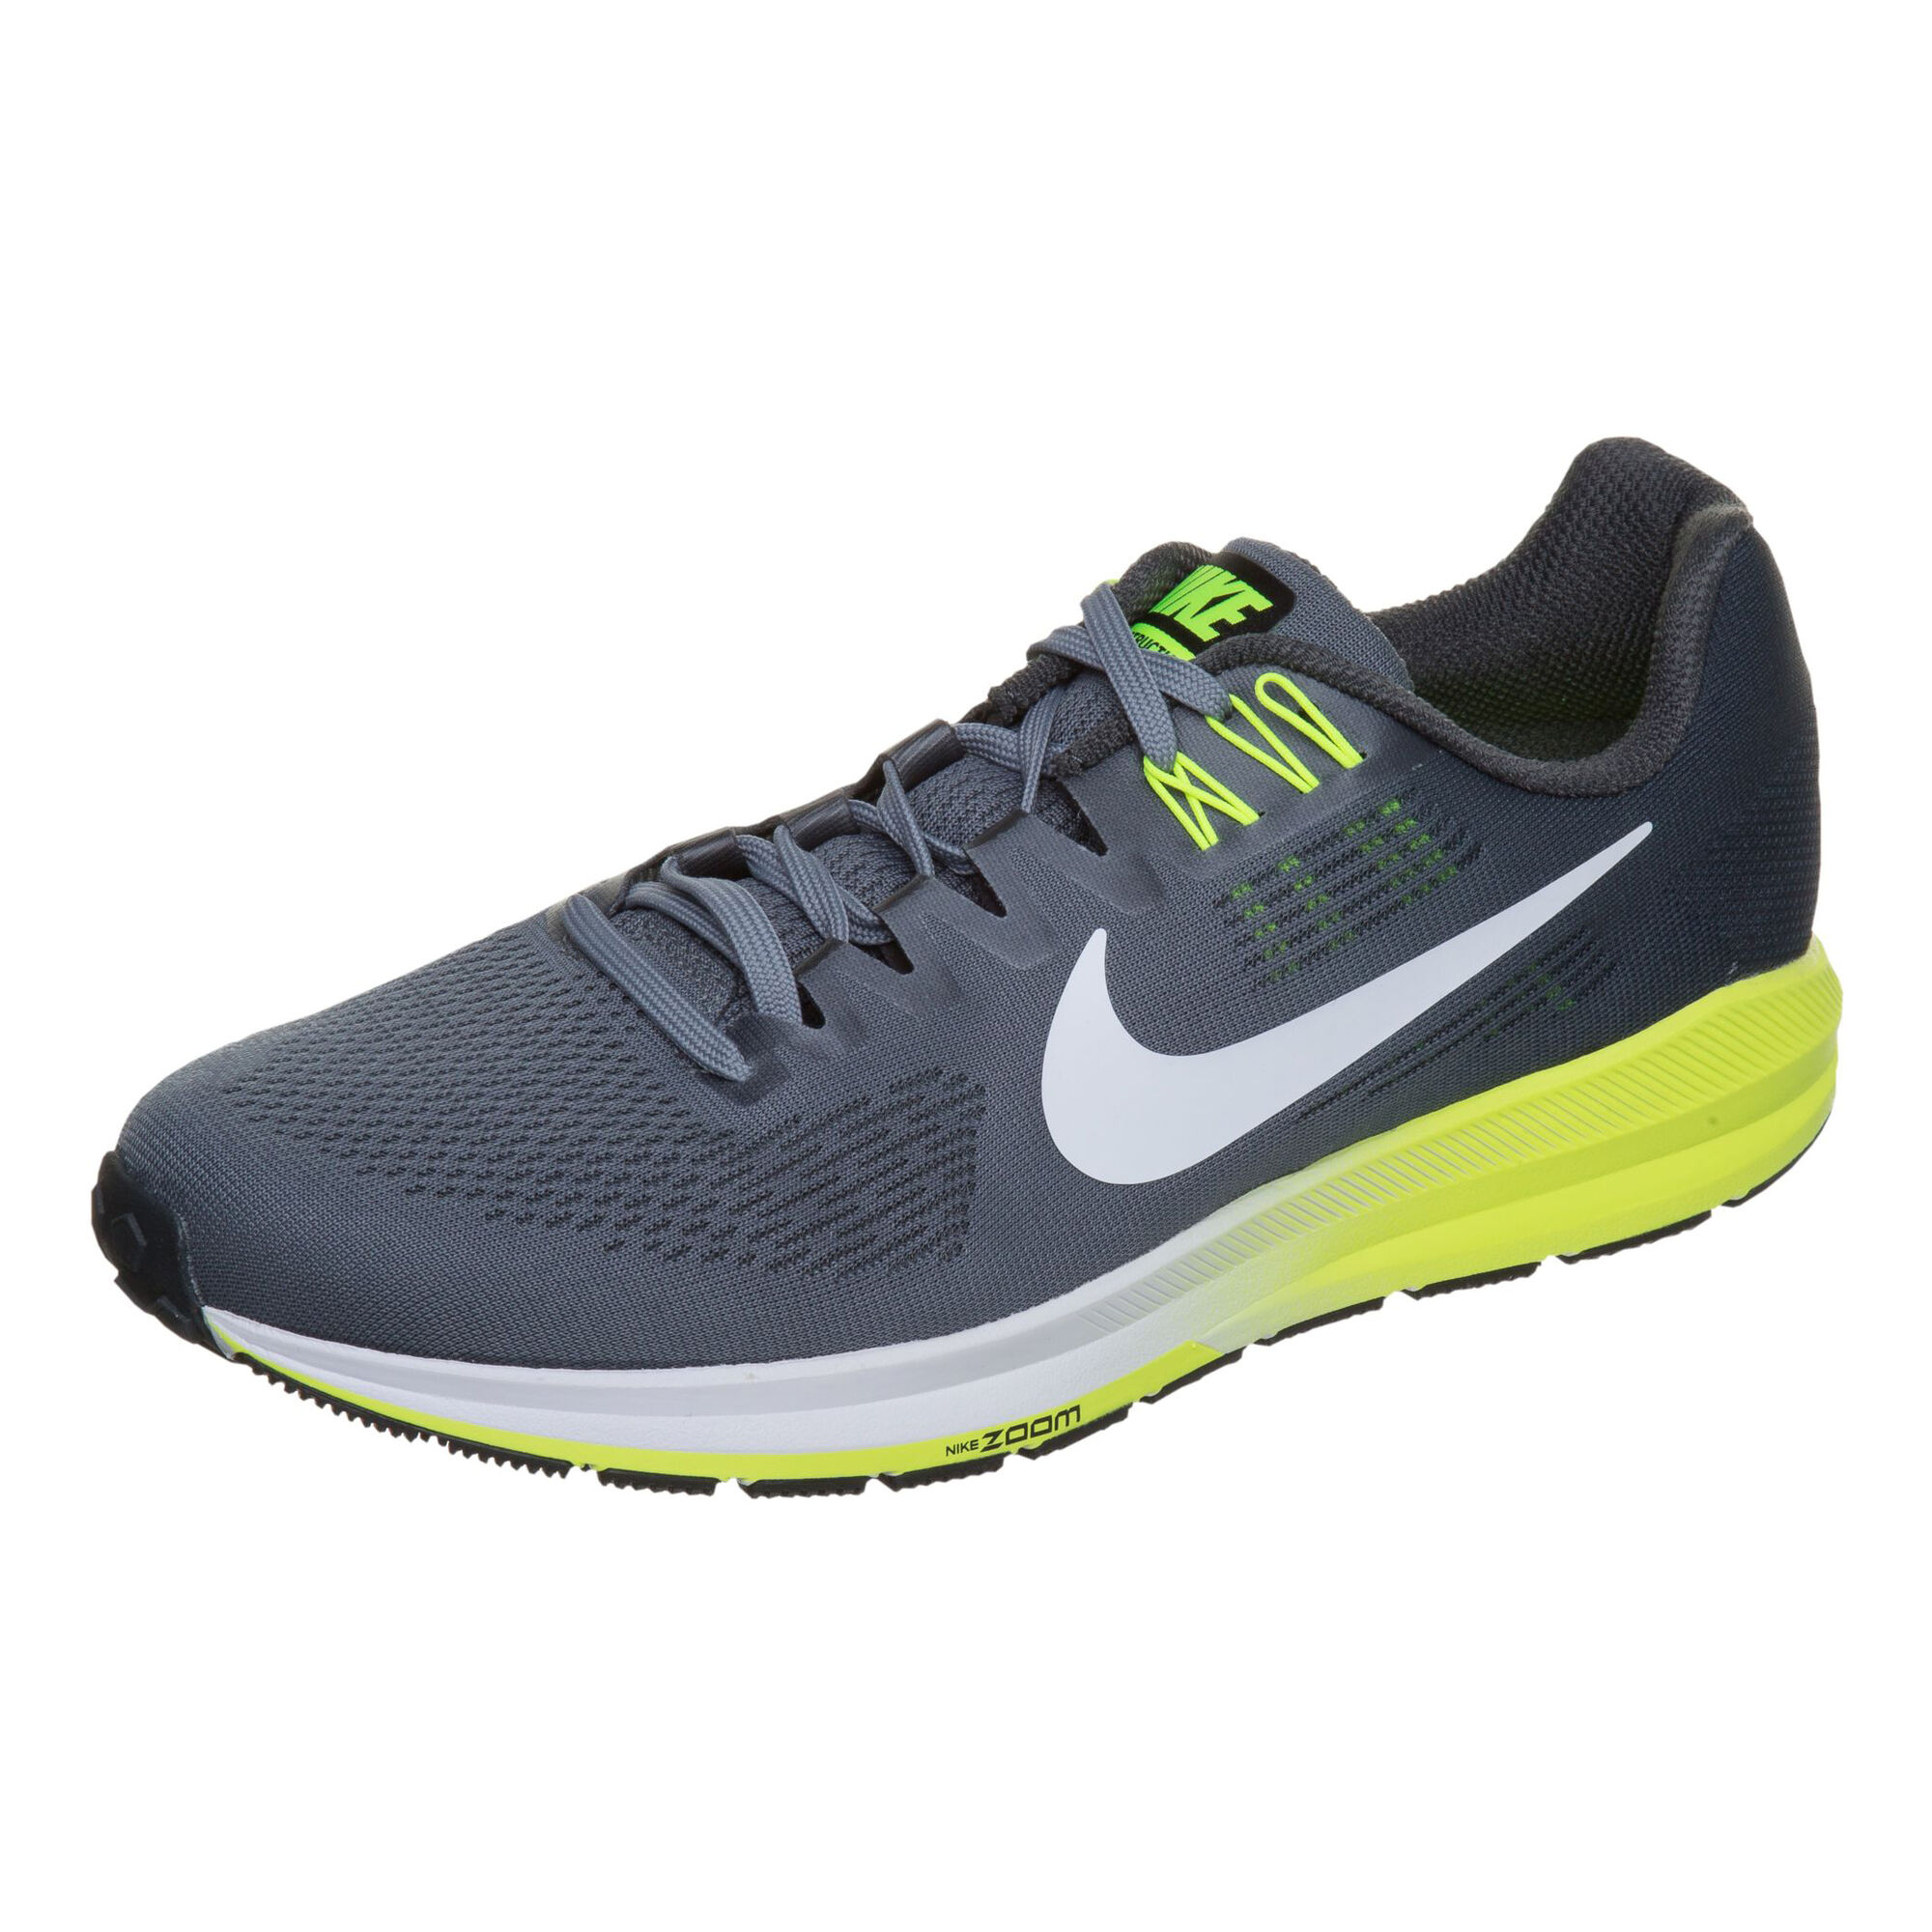 san francisco 4fbf8 22875 buy Nike Air Zoom Structure 21 Stability Running Shoe Men ...